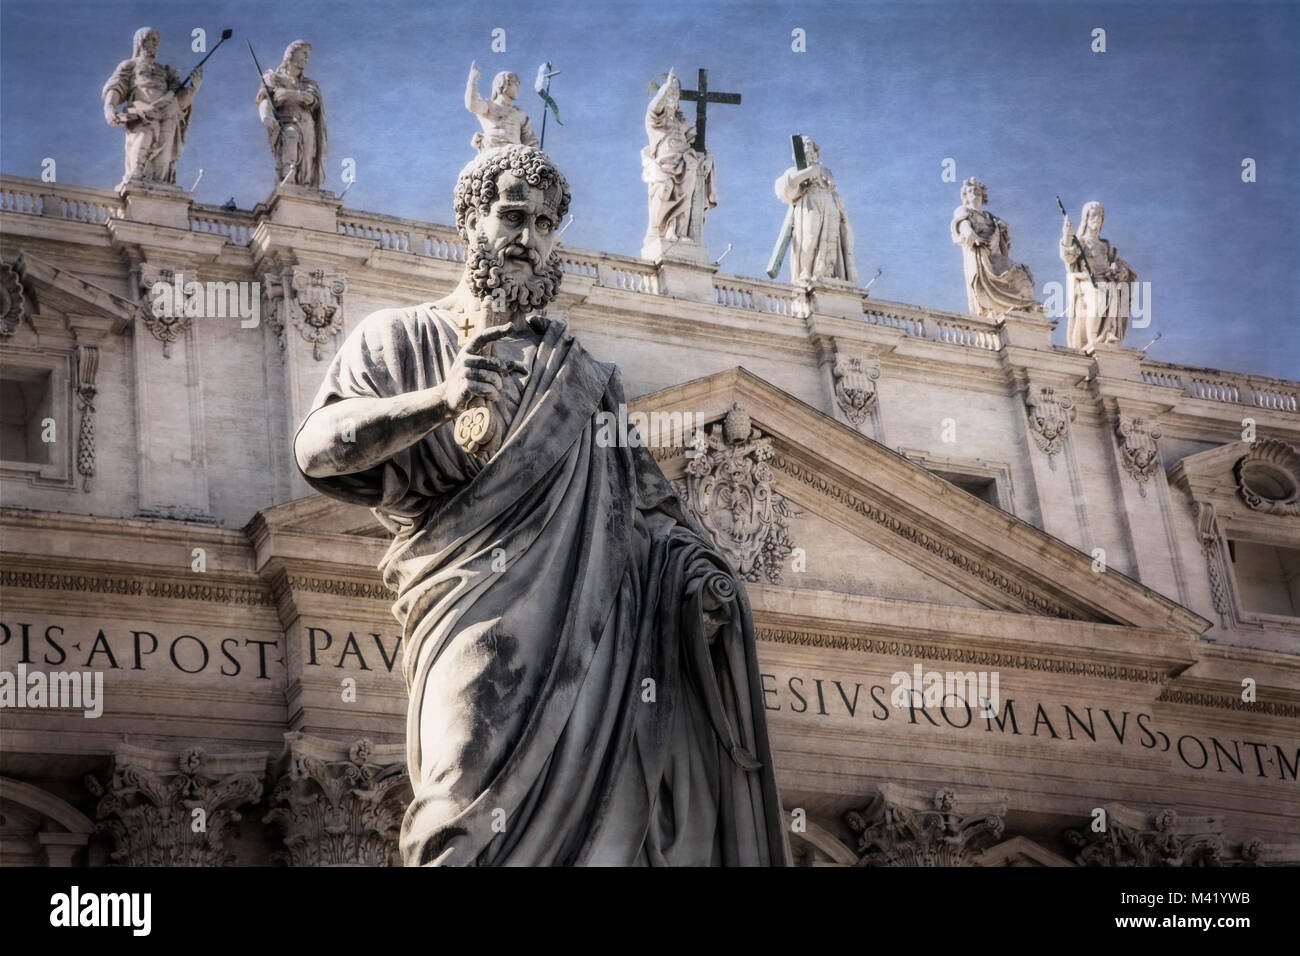 Sculptures adorn St. Peters Square and Vatican City in Rome, Italy. - Stock Image